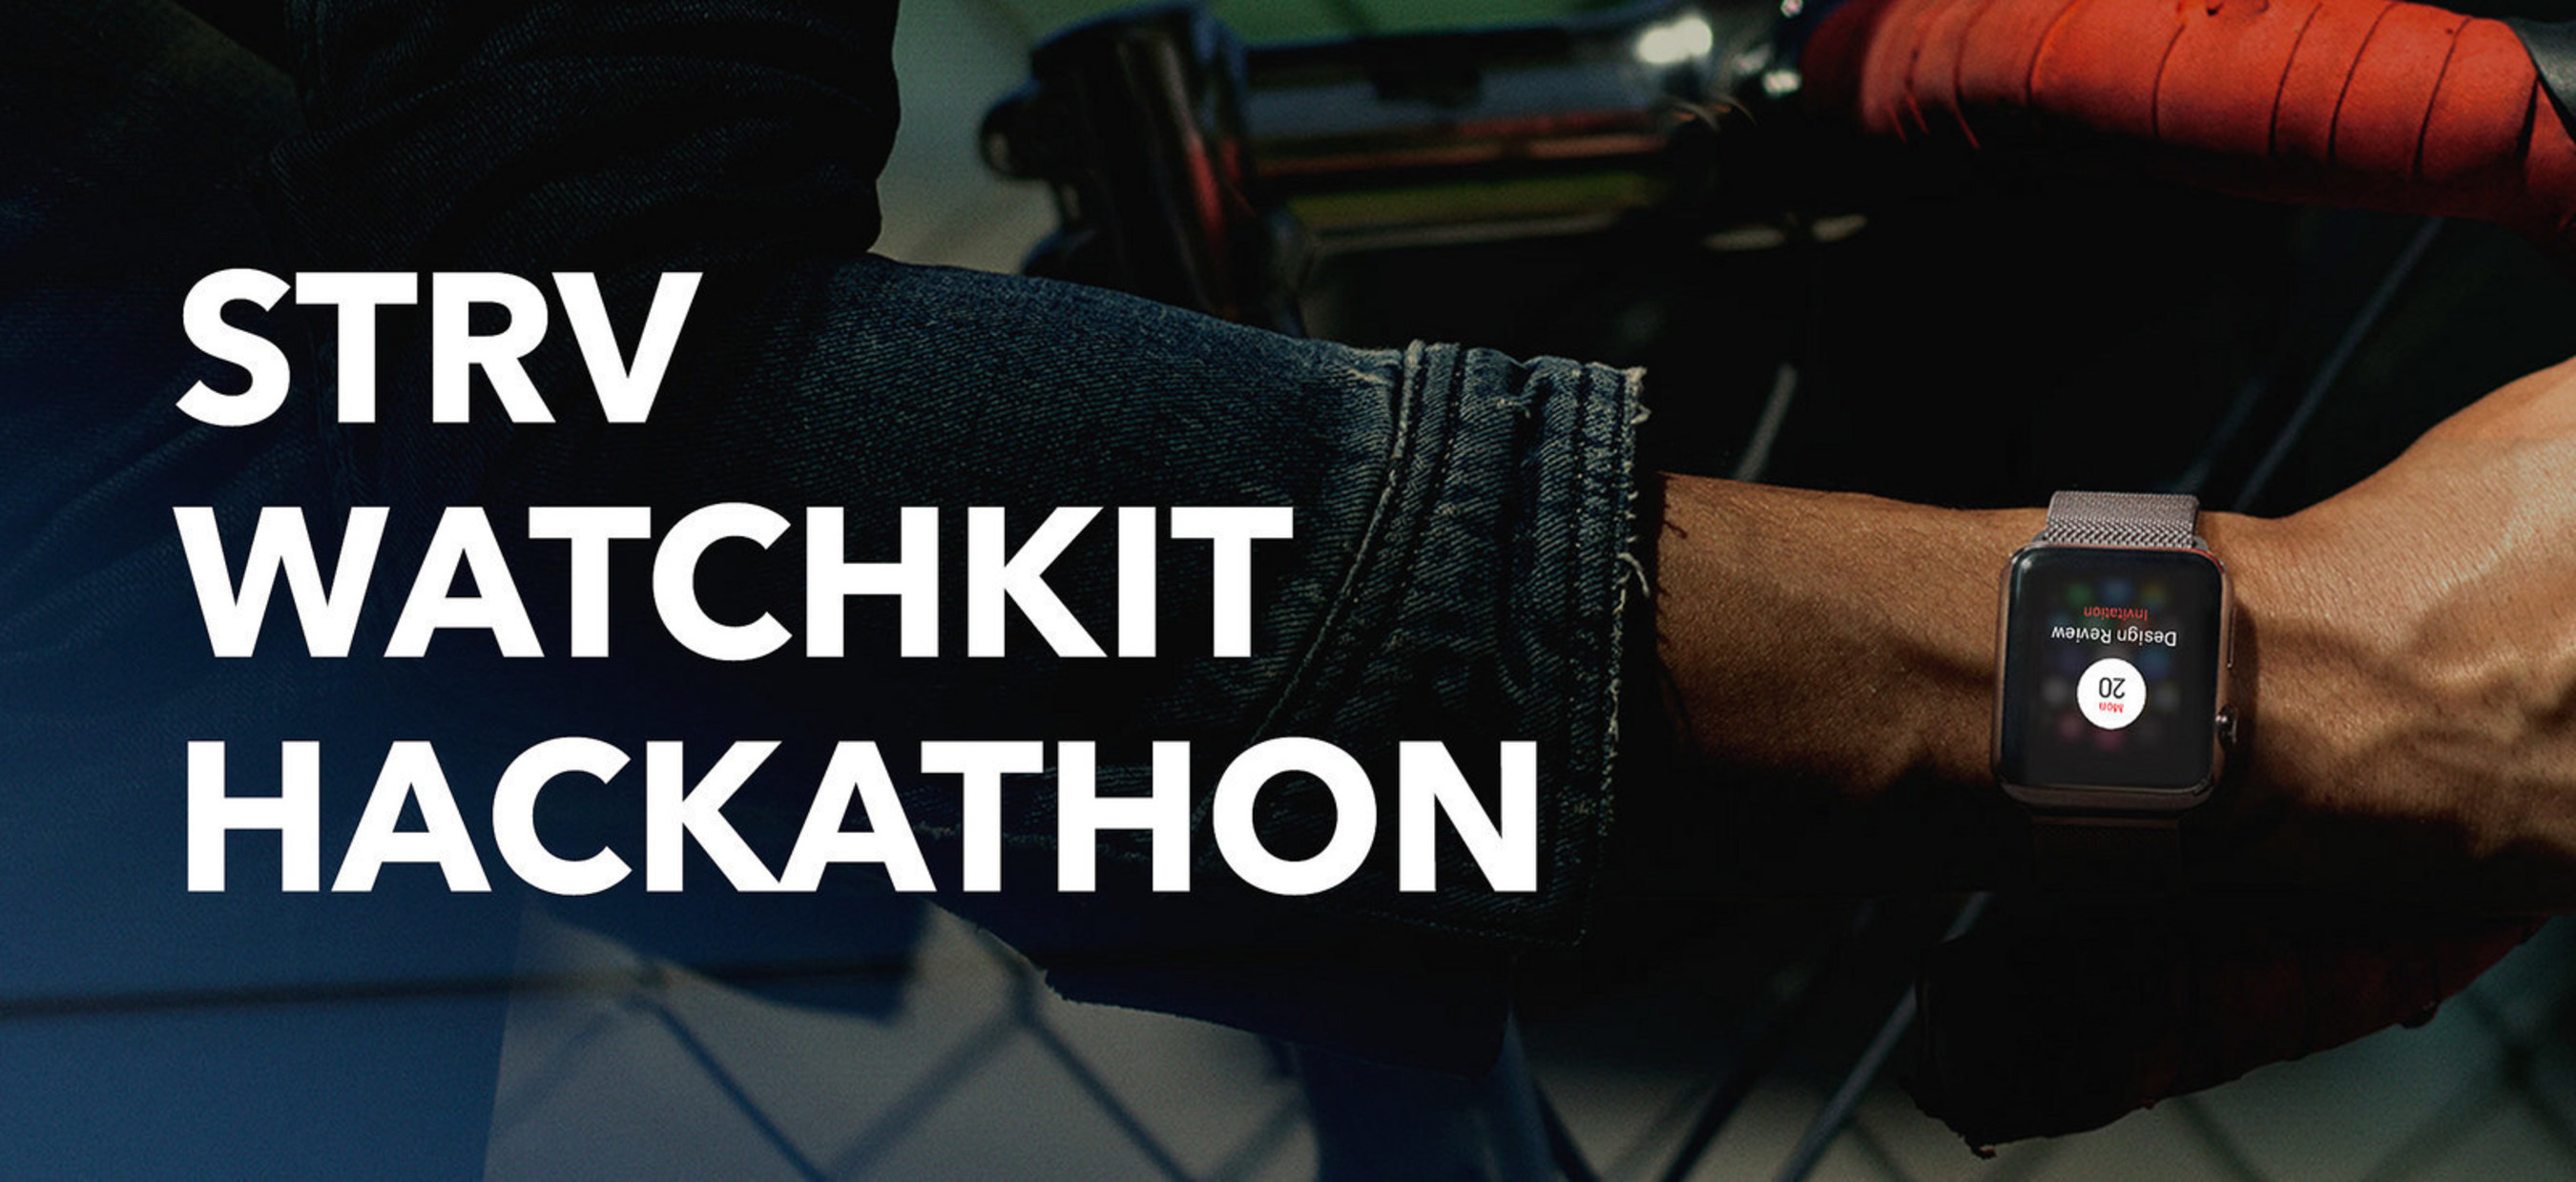 App Developer STRV to Host May Apple Watch 'Hack-a-thons' in Two Key Markets - San Francisco and Prague, Europe